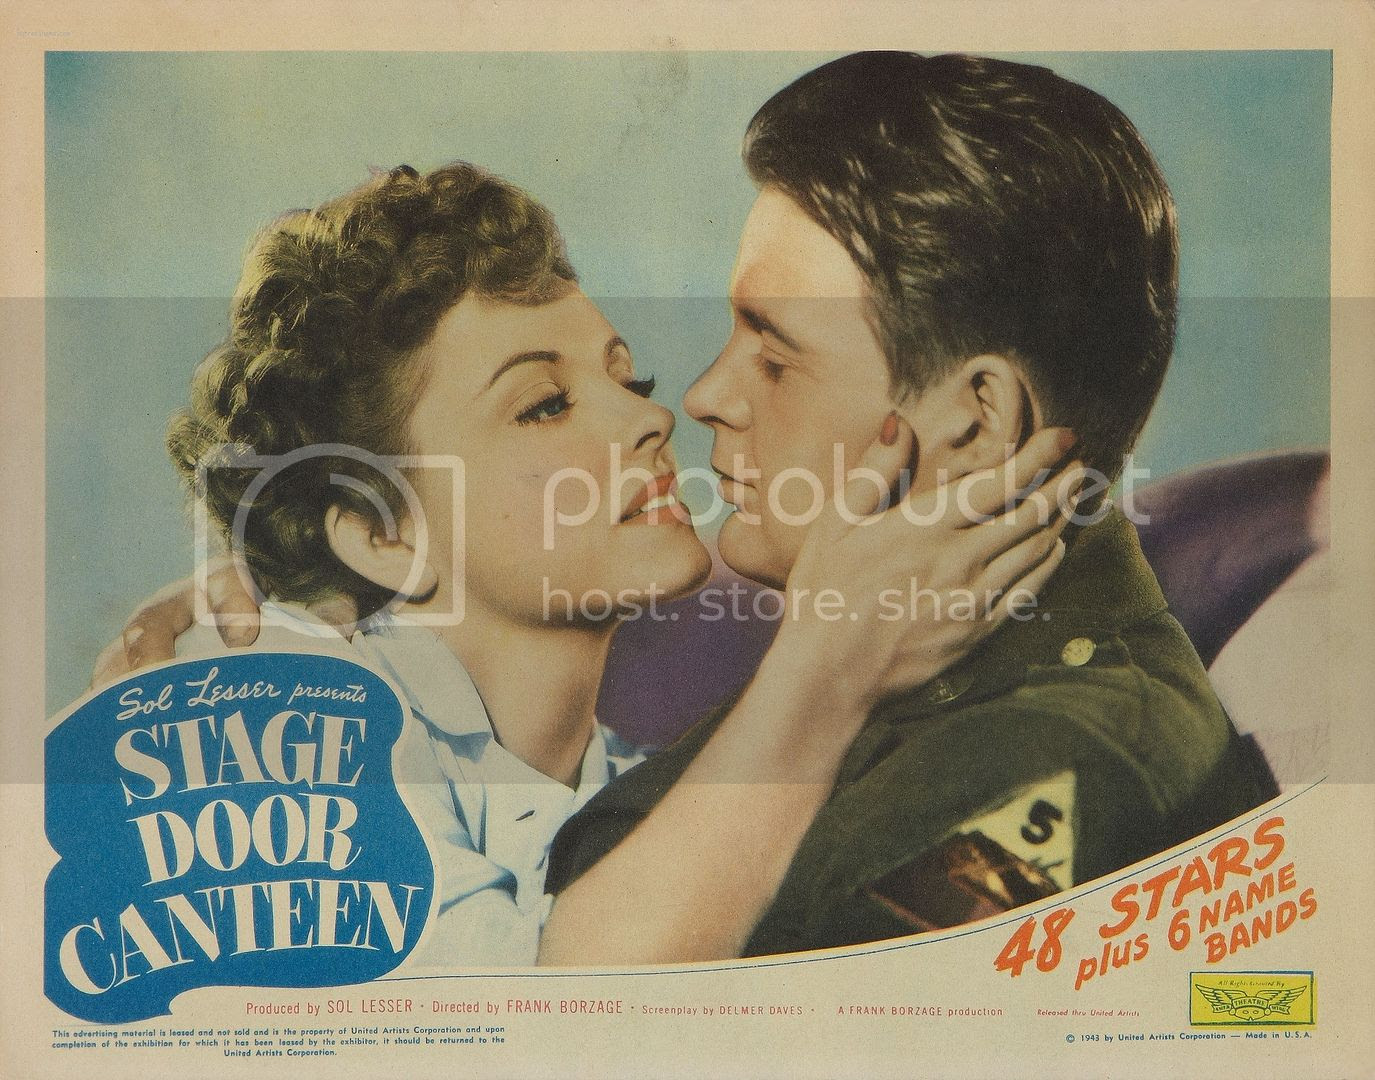 photo poster_stage_door_canteen-2.jpg